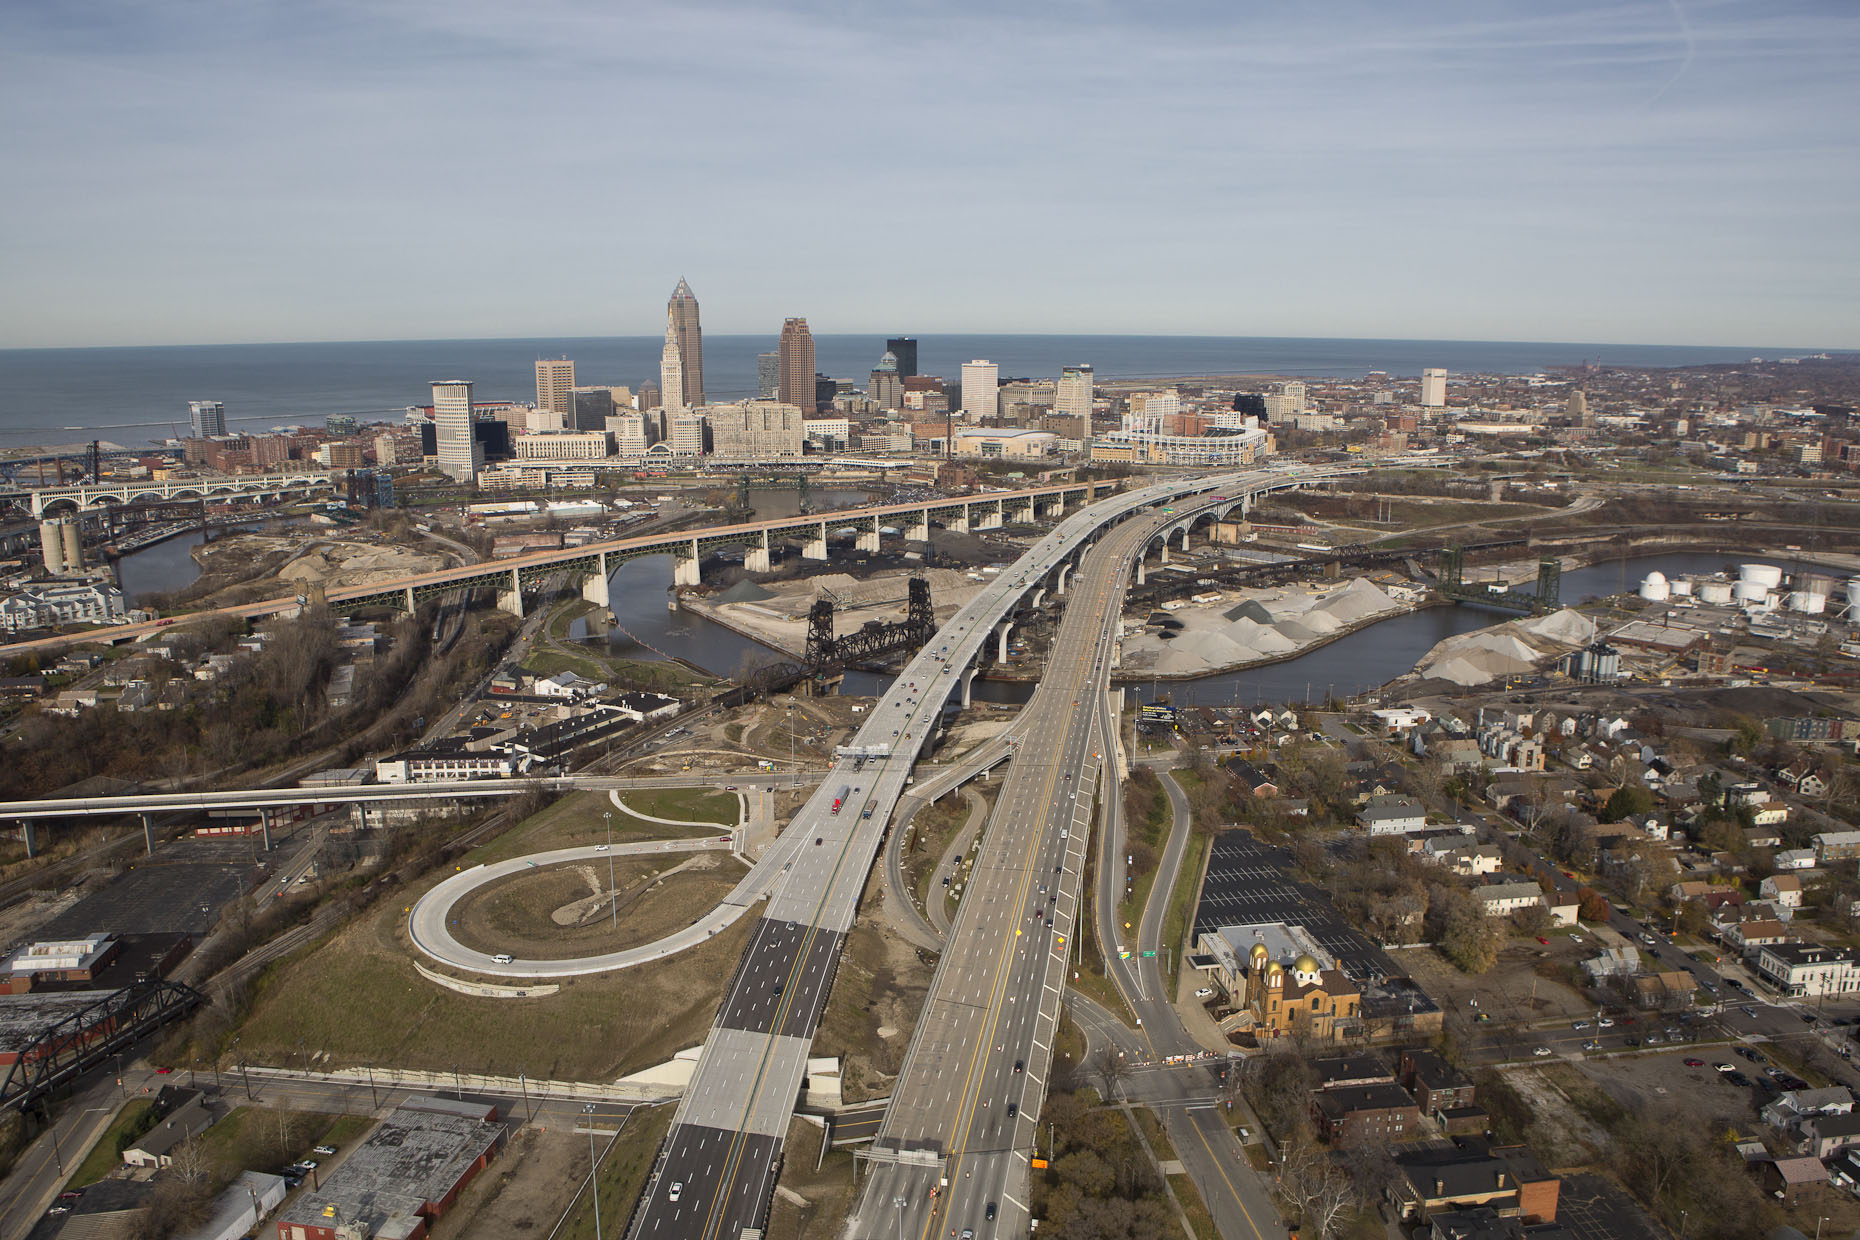 US I-90 Cleveland Innerbelt Bridge by HNTB photographed by Brad Feinknopf based in Columbus, Ohio